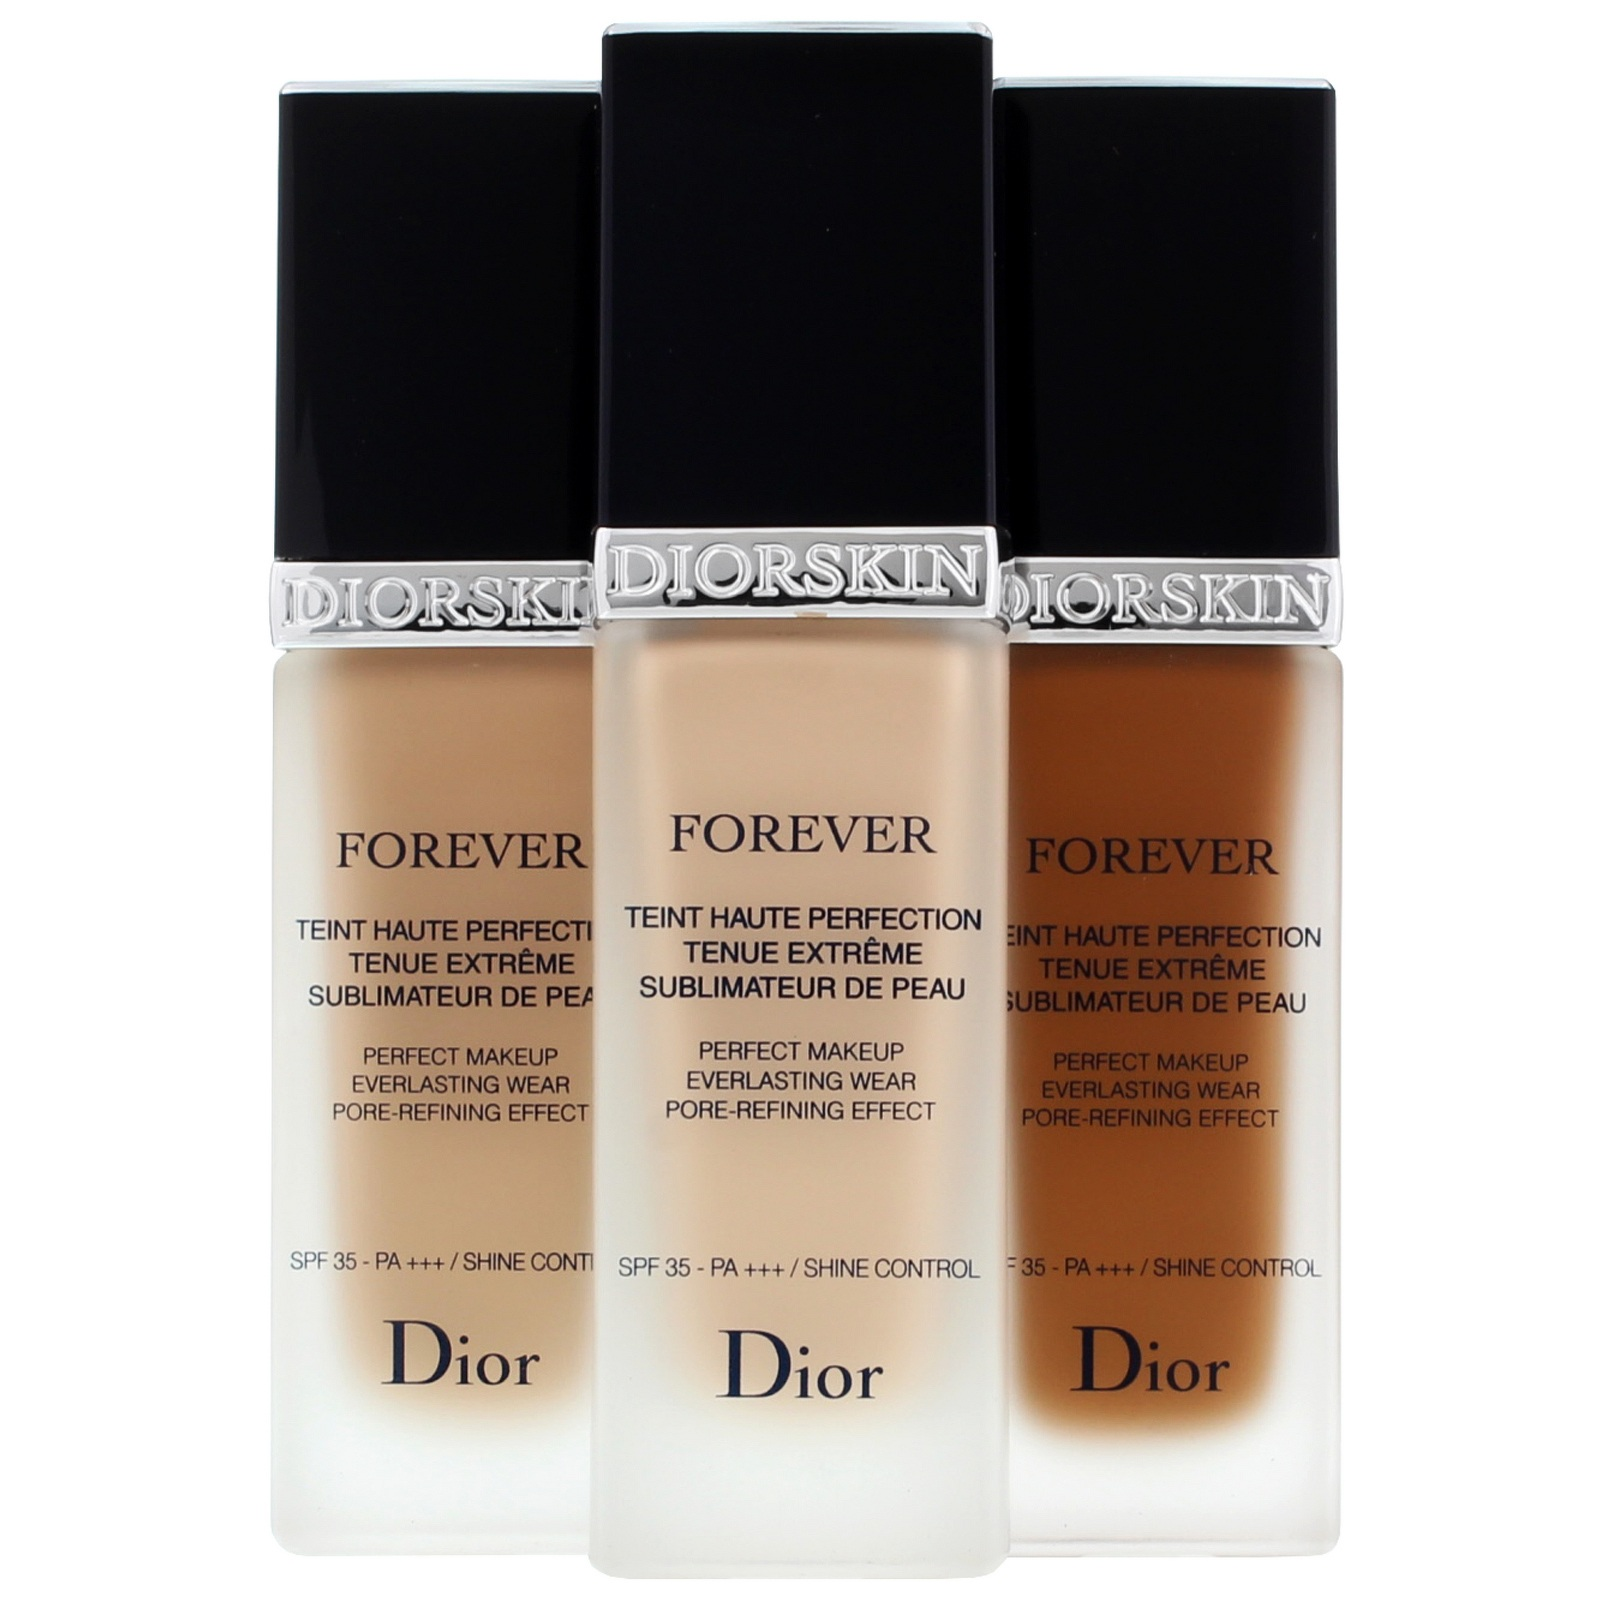 Dior Diorskin Forever Perfect Makeup Everlasting Wear Pore-Refining Effect